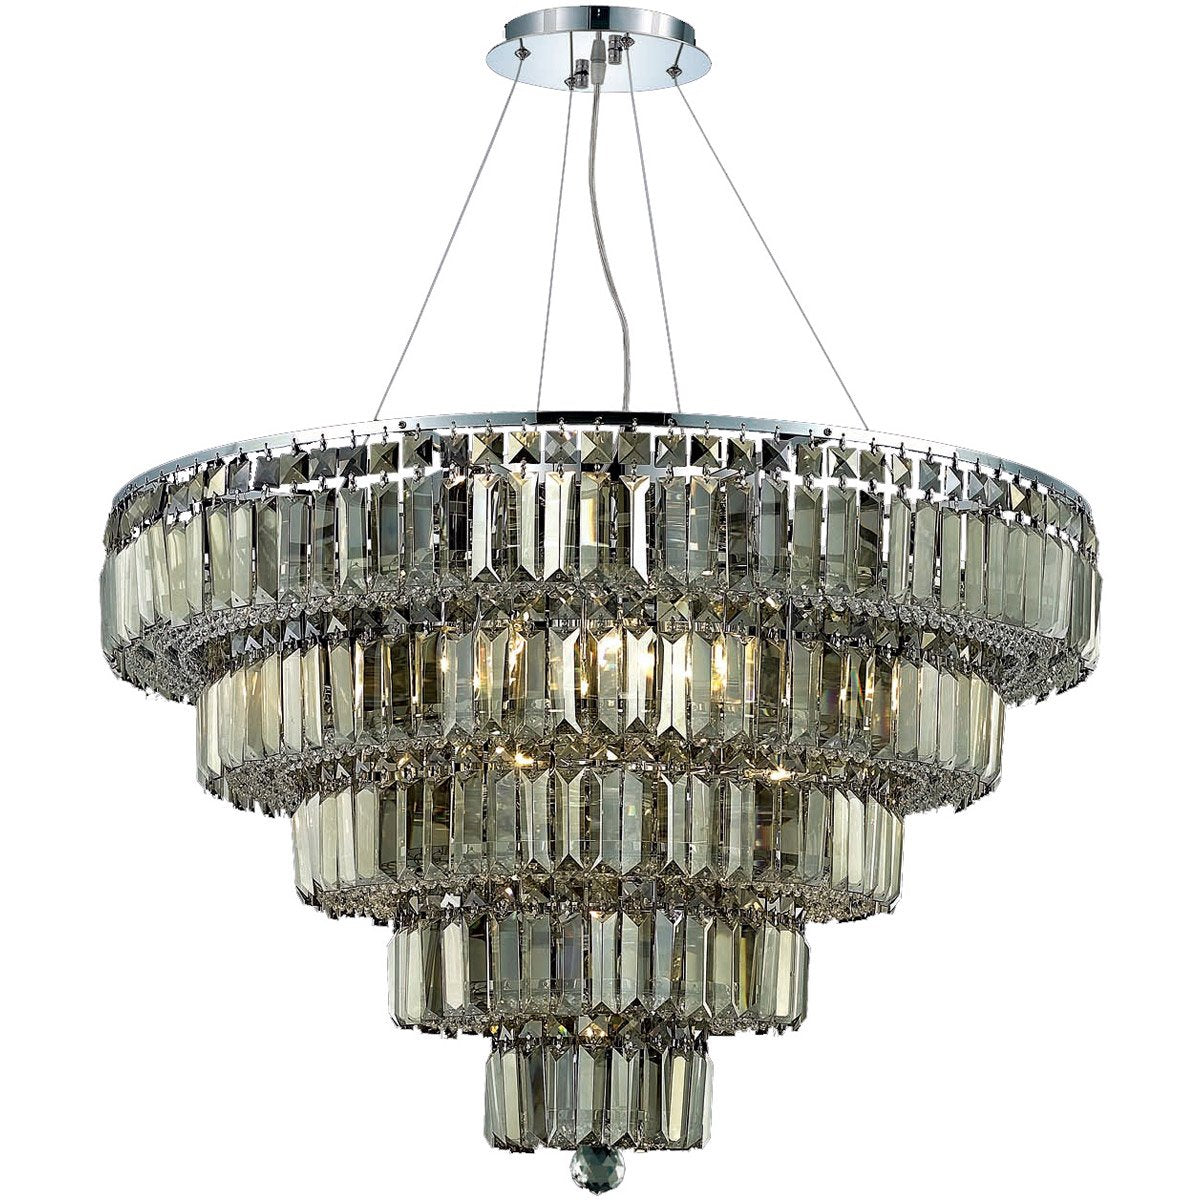 Maxime 30 Crystal Chandelier With 17 Lights - Chrome Finish And Smokey / Royal Cut Crystal Chandelier